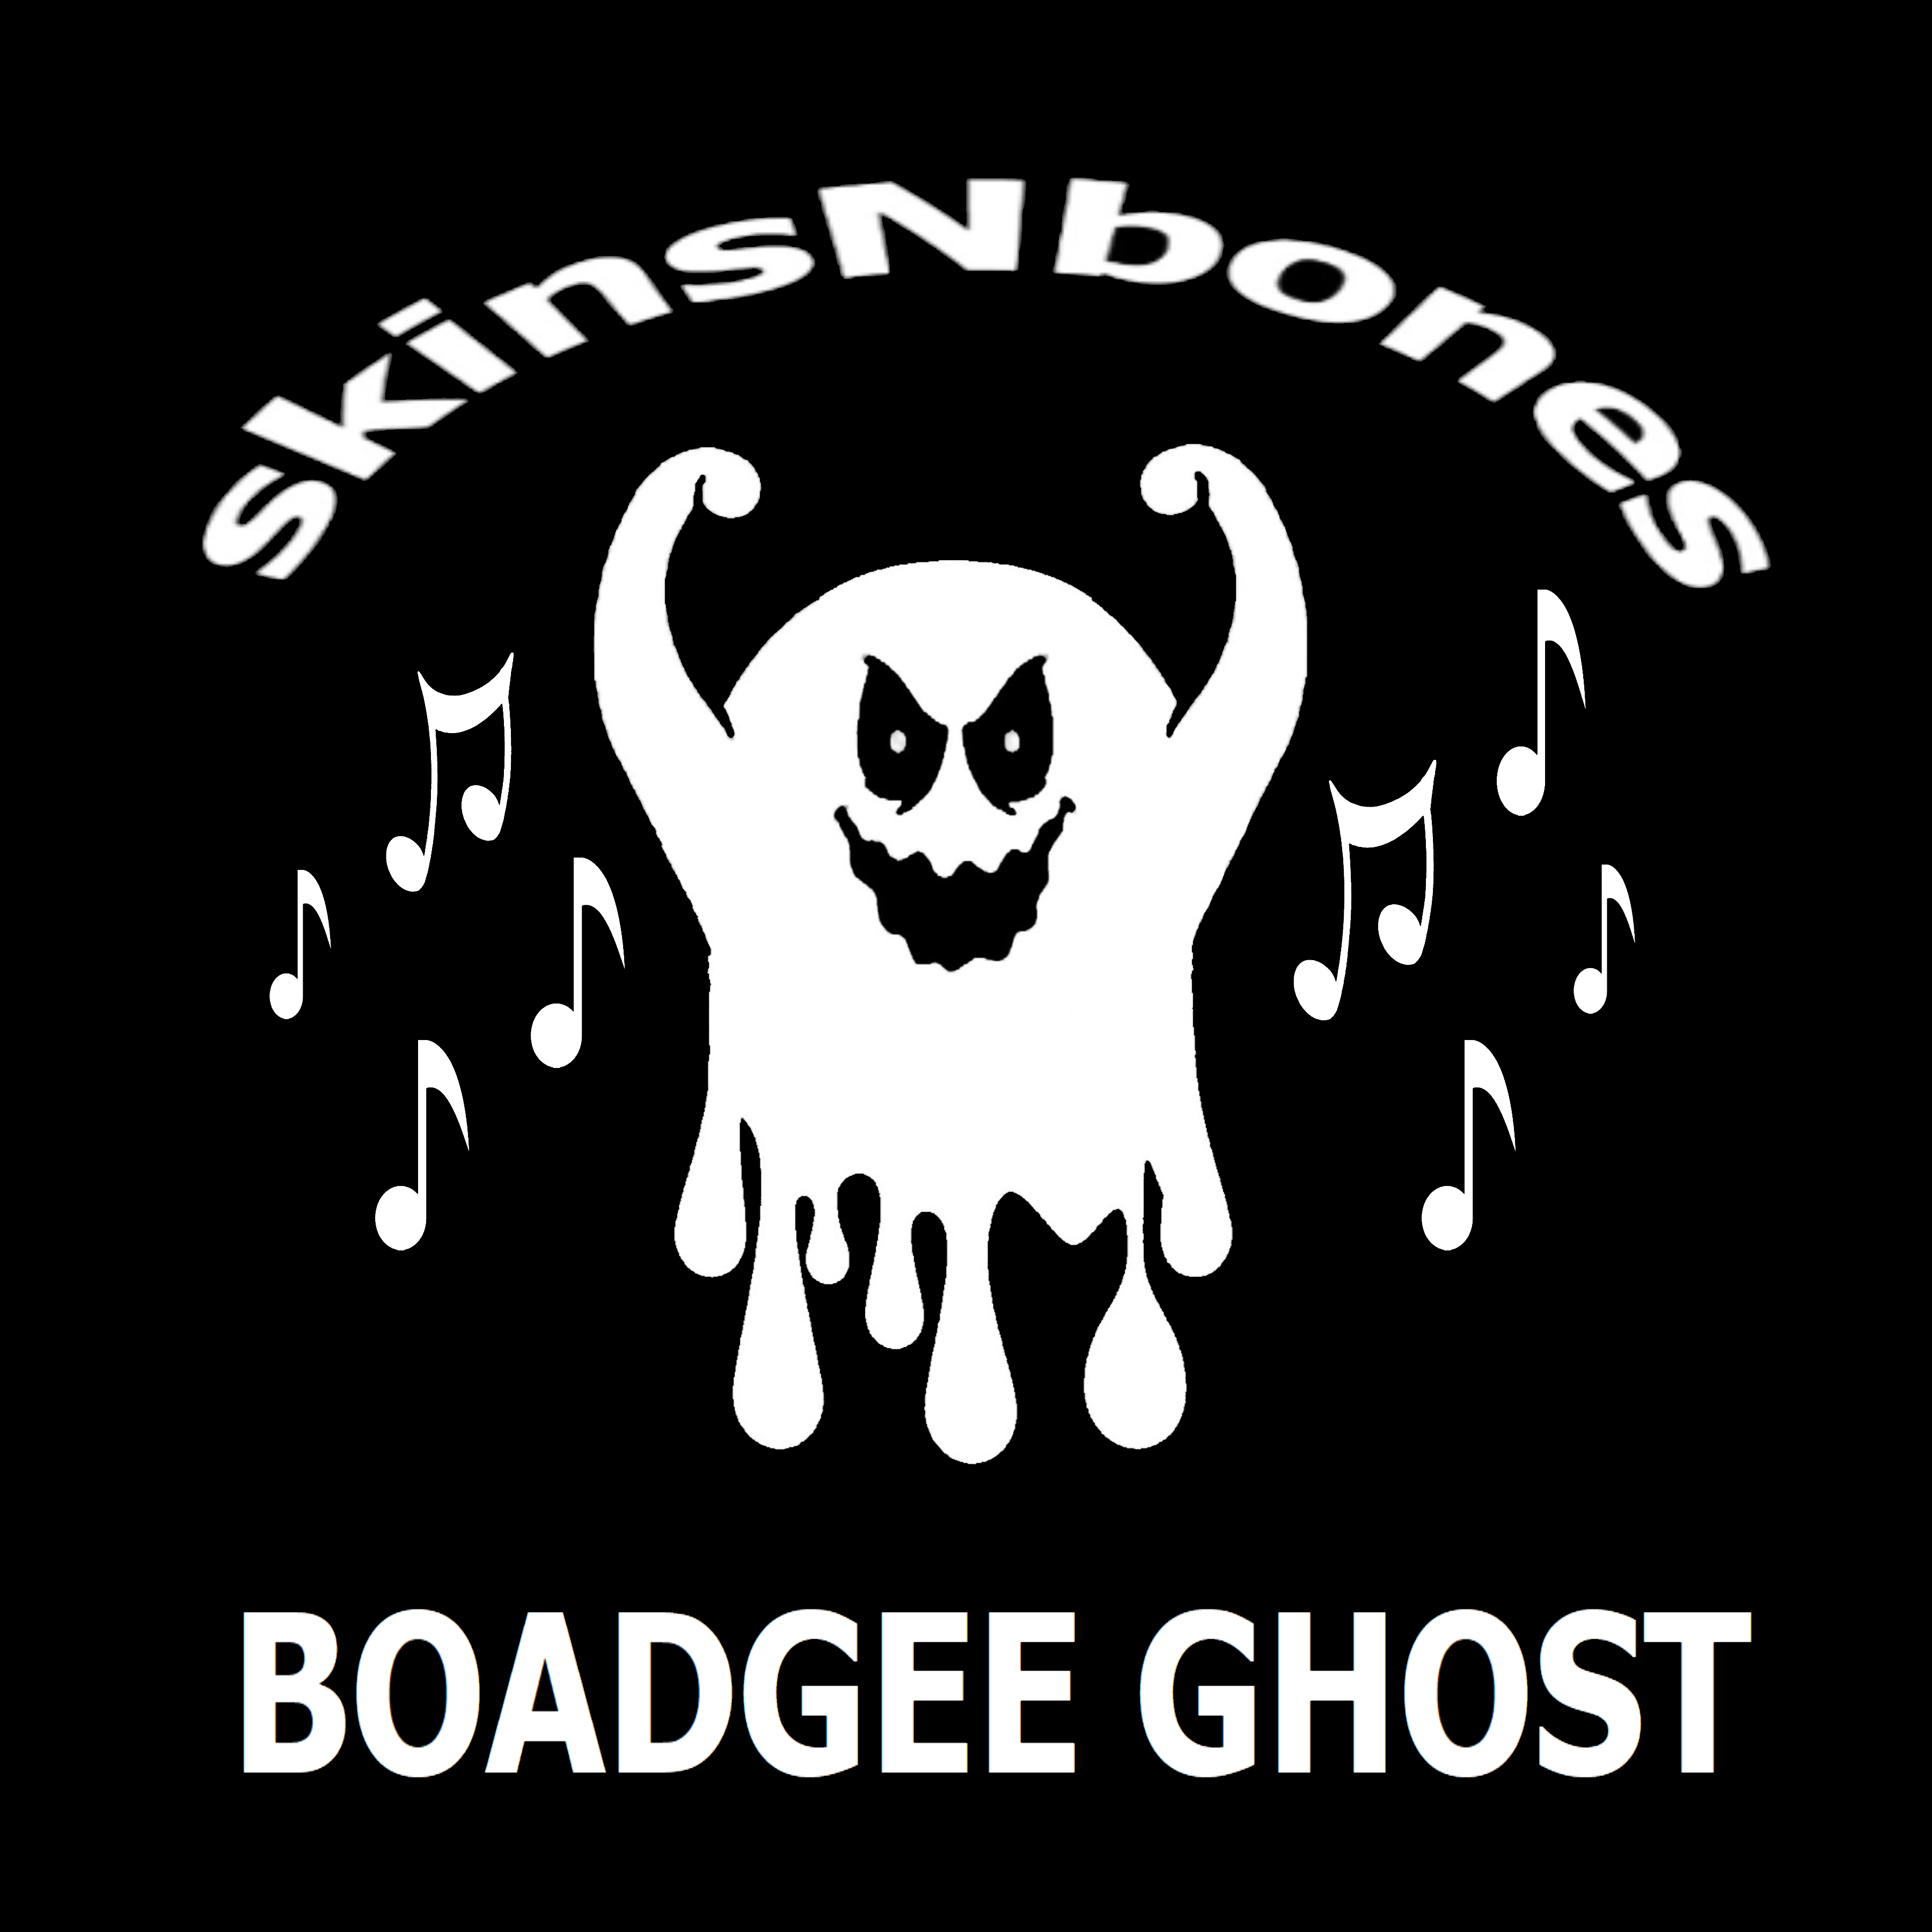 SkinsNbones Show Environmental Concern With Latest Single